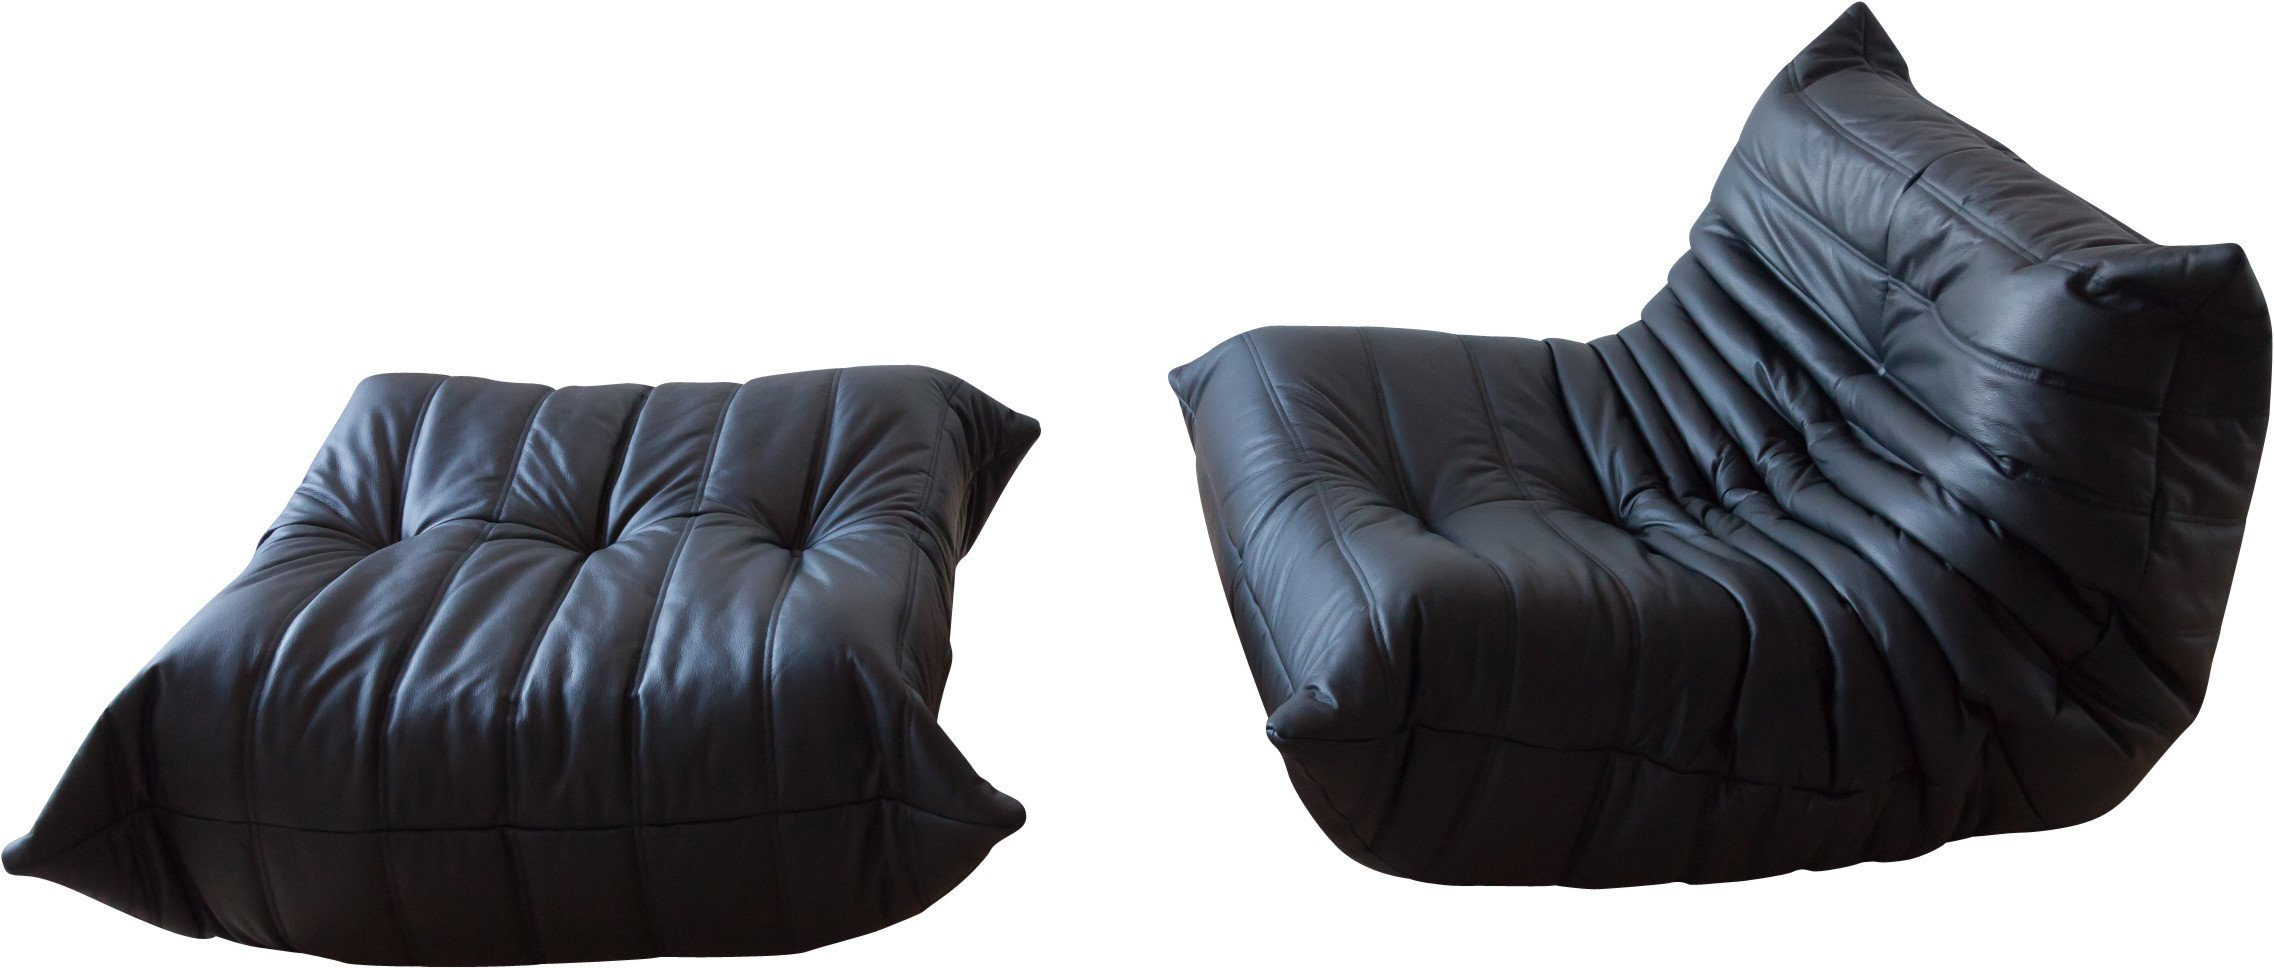 Set of Togo Lounge Chair and Pouf by M. Ducaroy for Ligne Roset, France, 1970s